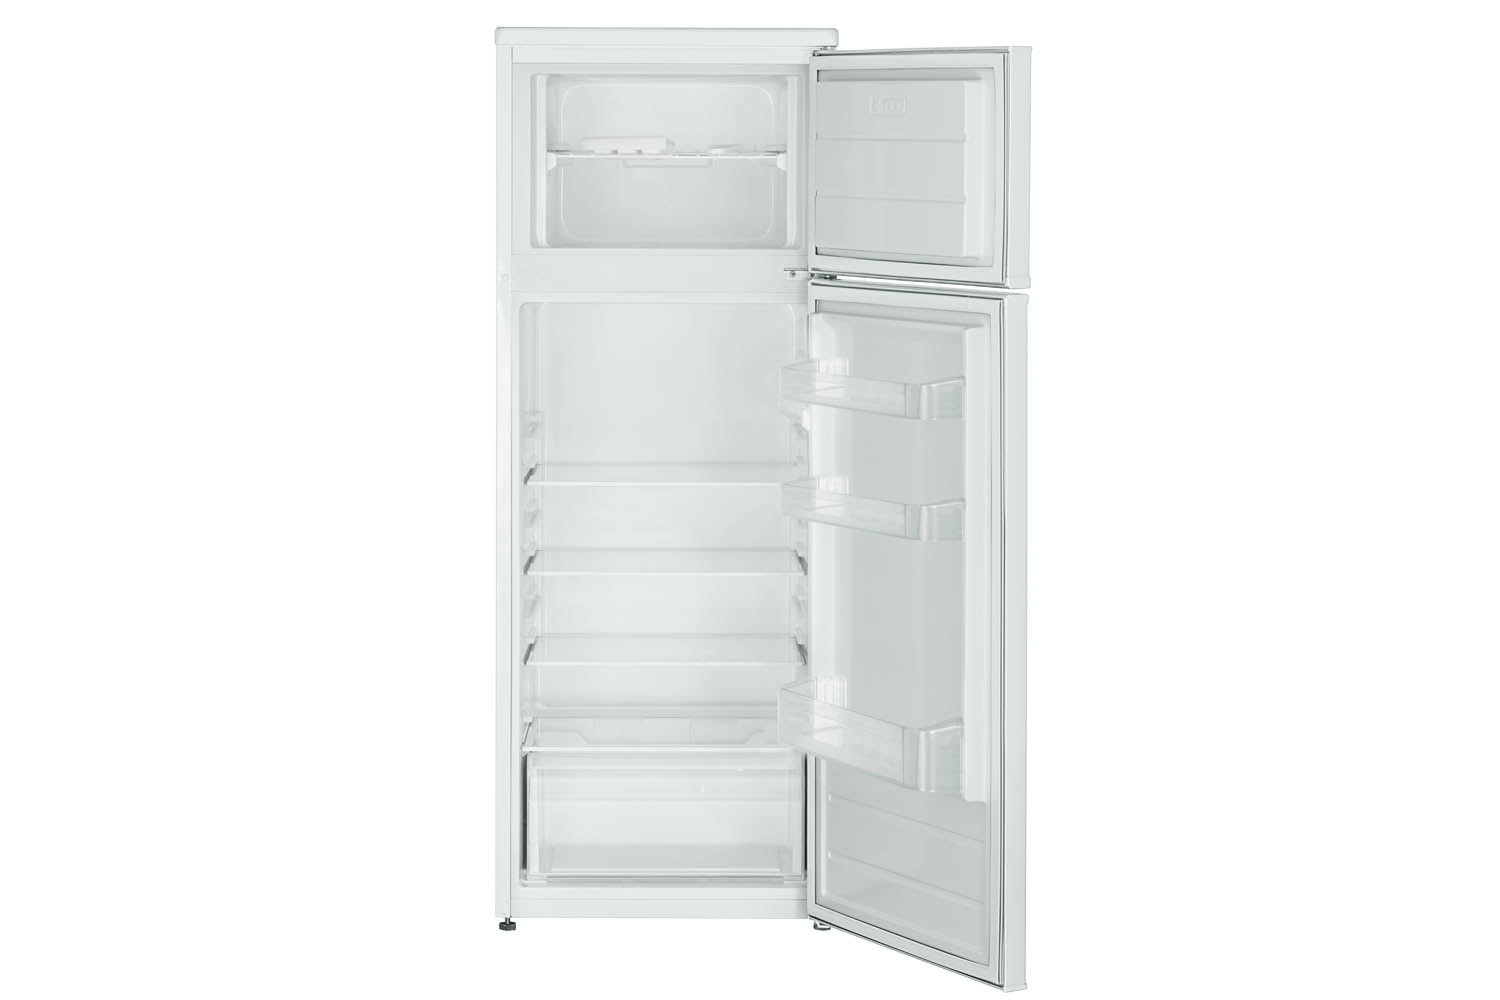 Finlux Freestanding Fridge Freezer | FF213WH